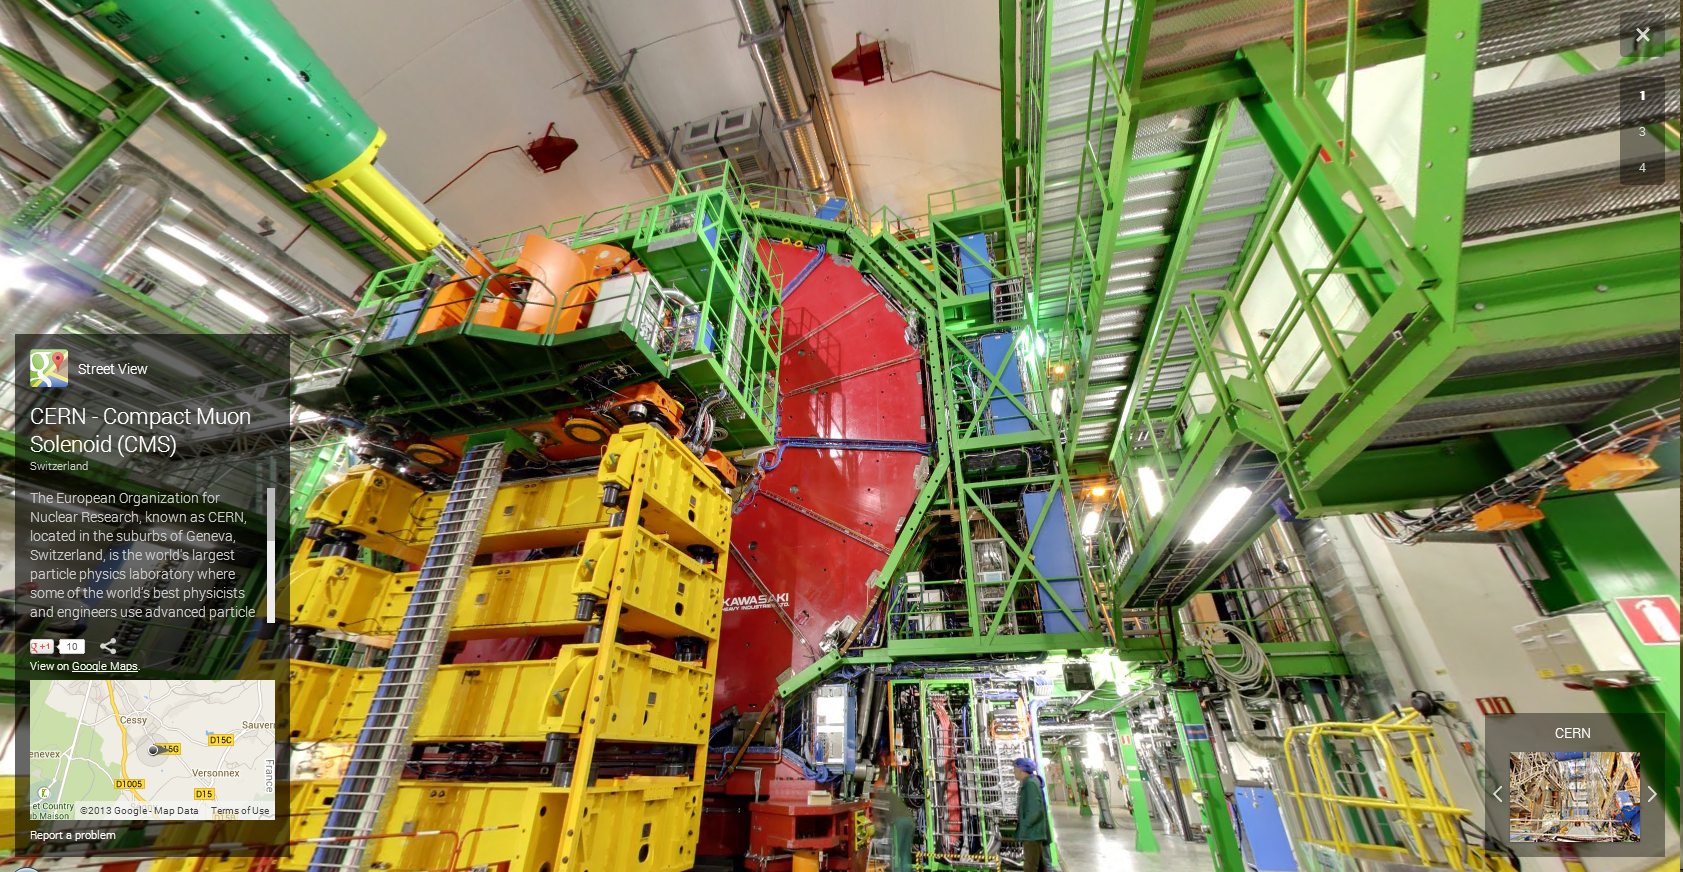 The Higgs Boson is Found on Street View